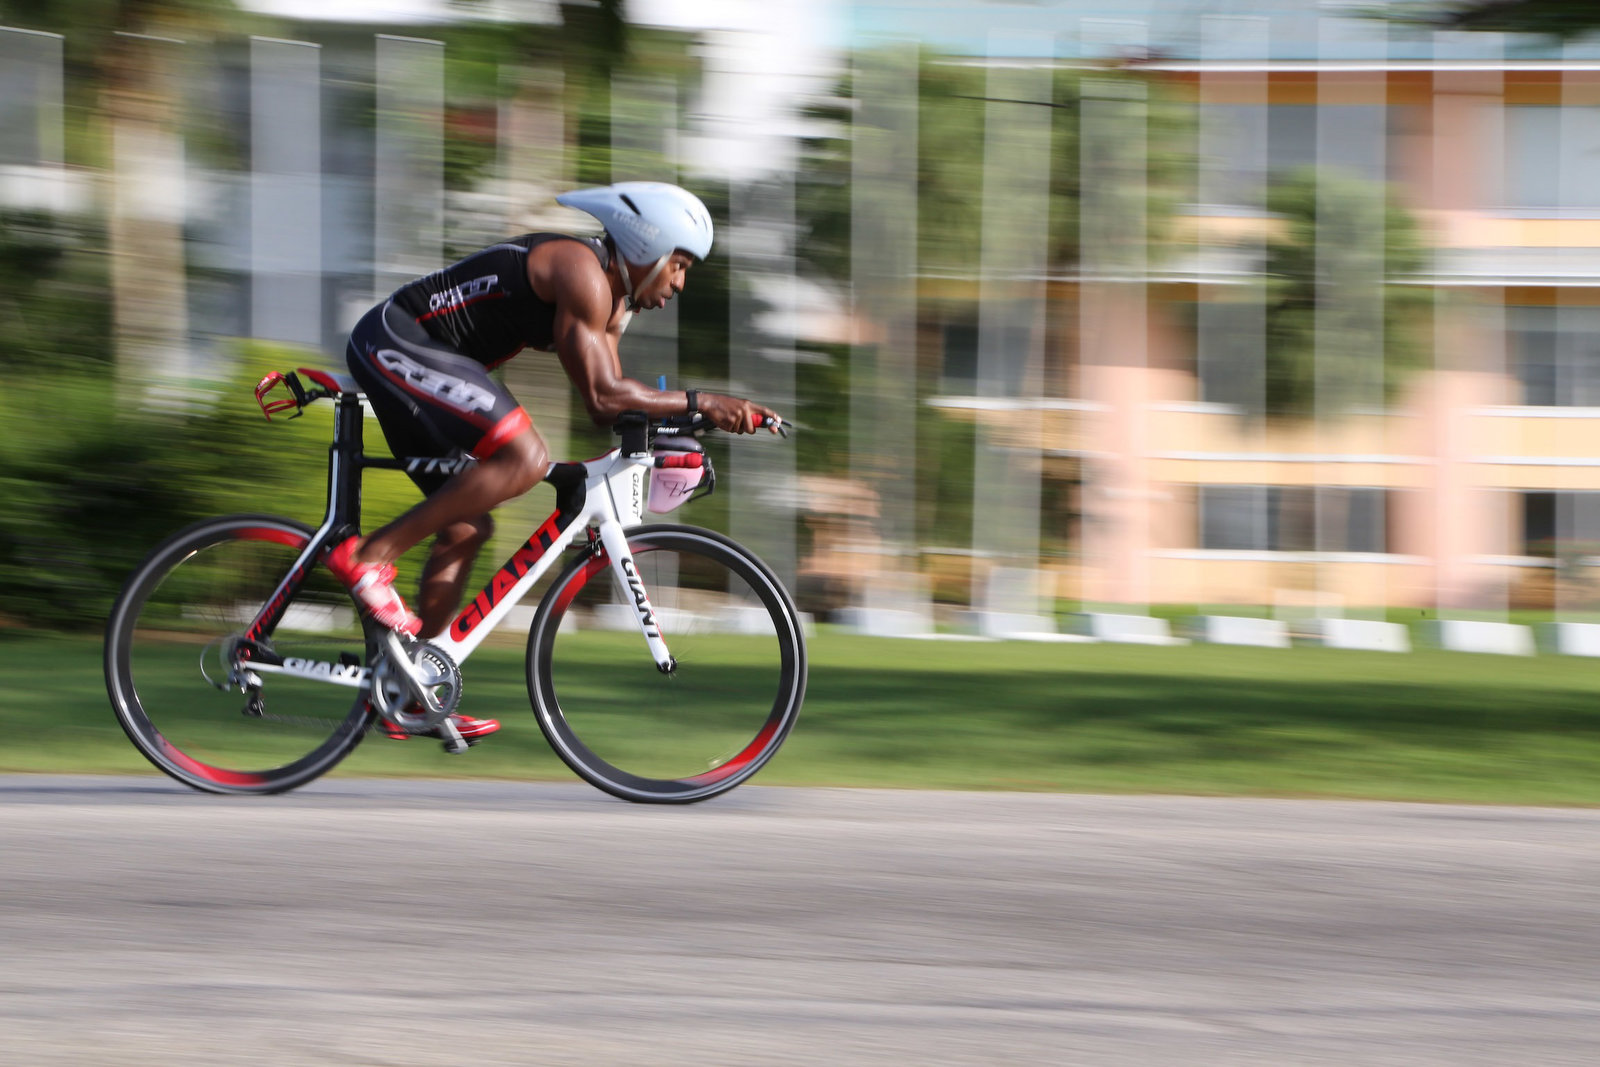 Cyclist in action. Photo by Ross Photography, Trinidad, W.I..